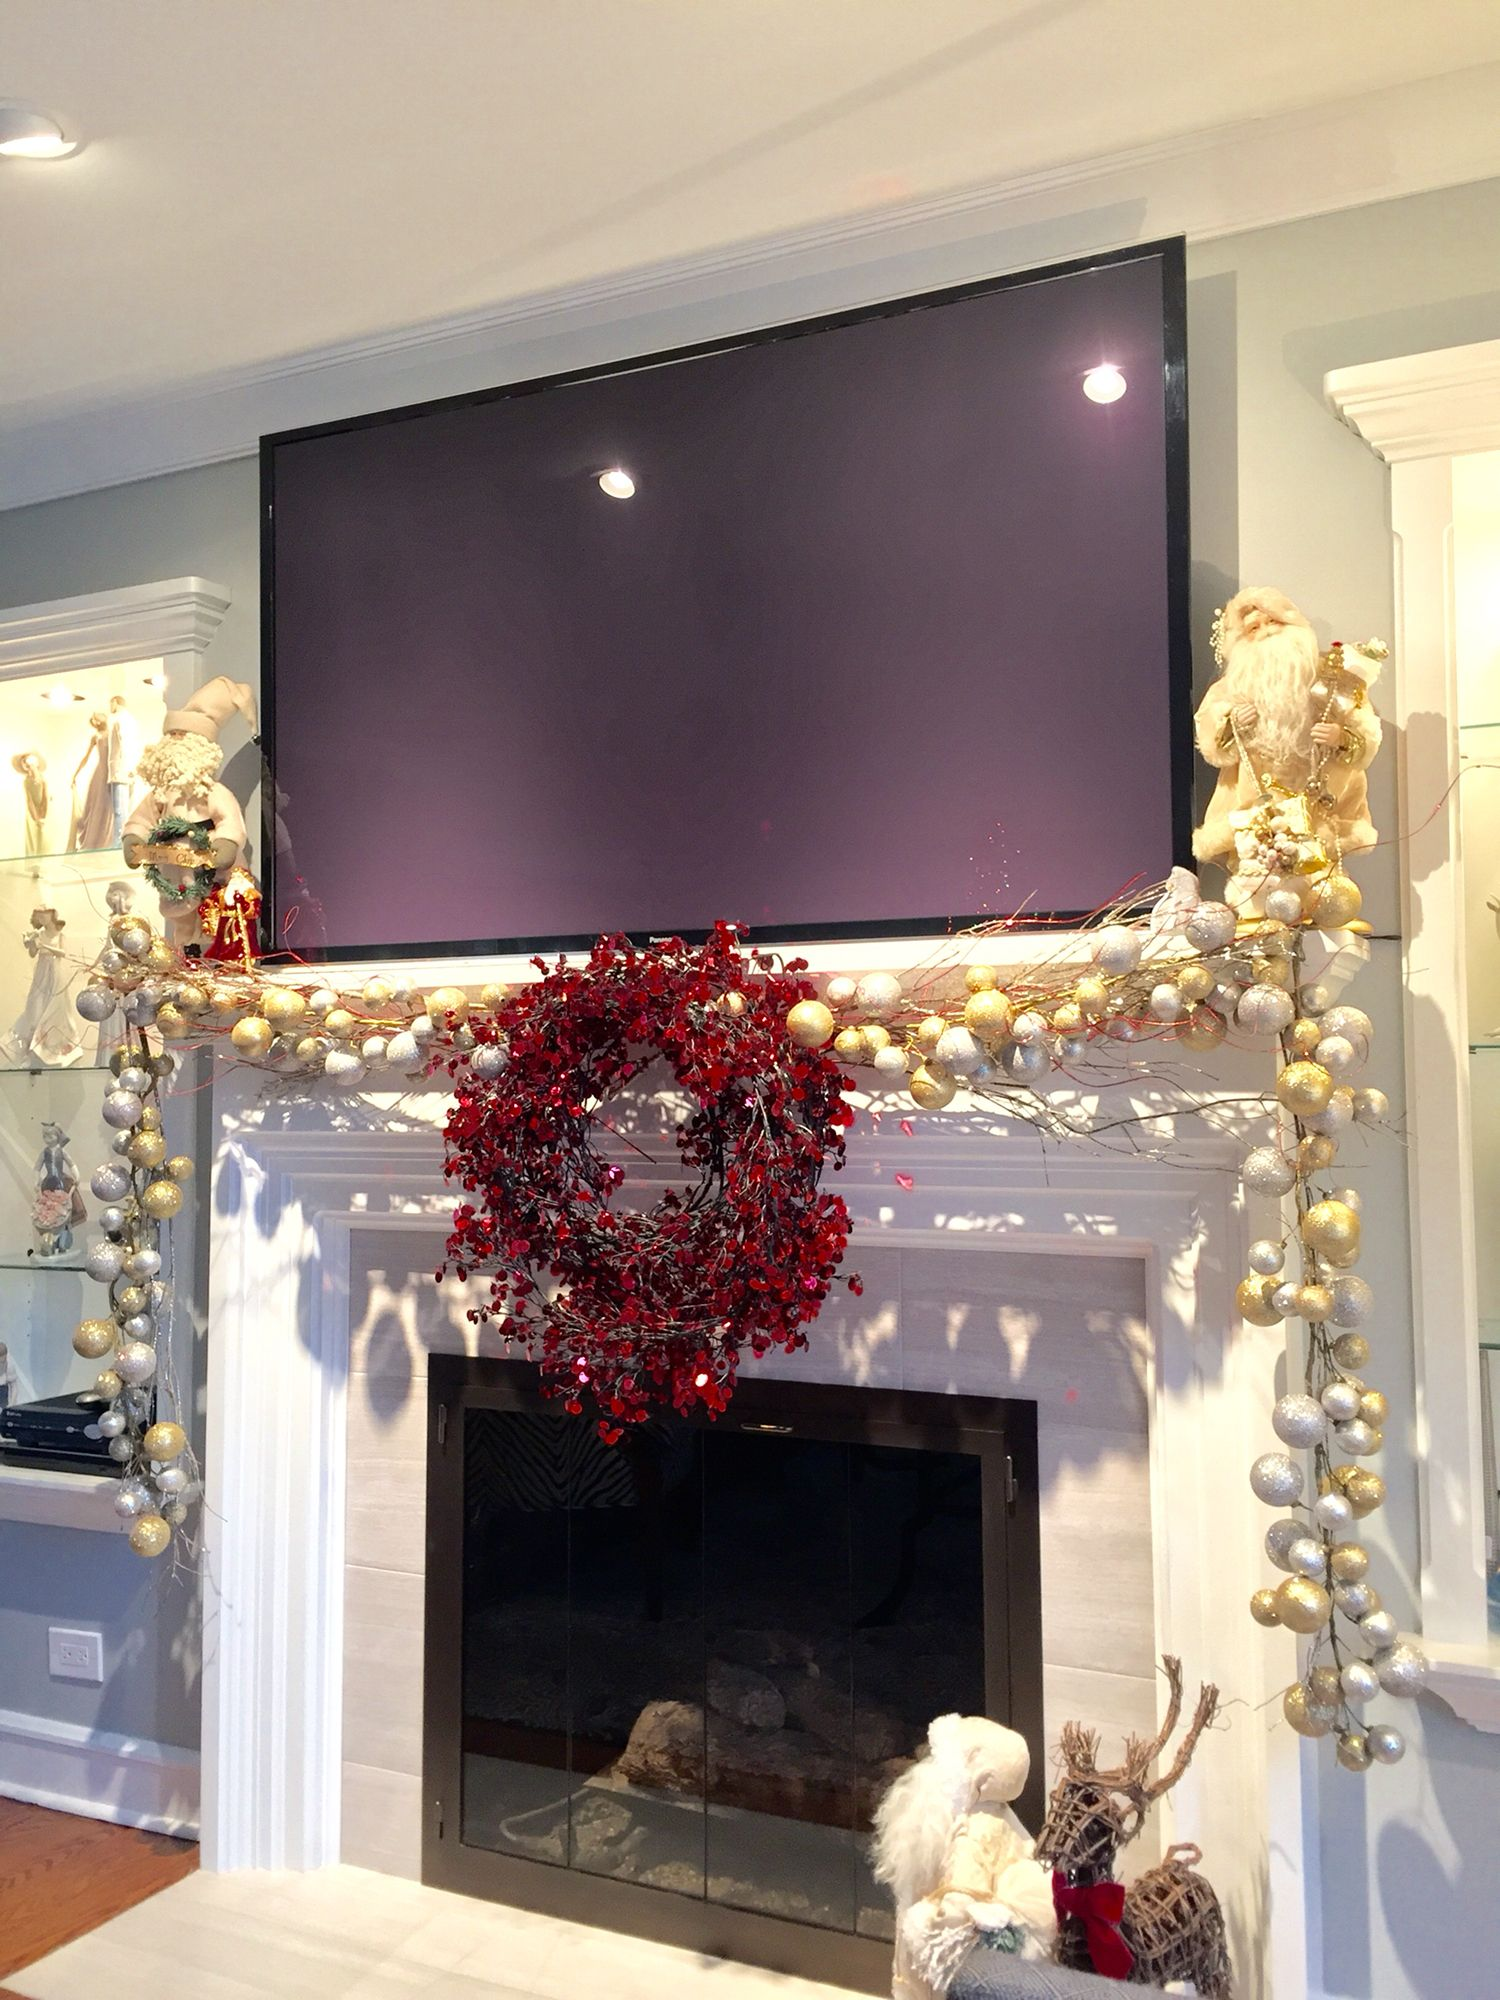 Mantle Decoration For Christmas With A Screen Tv